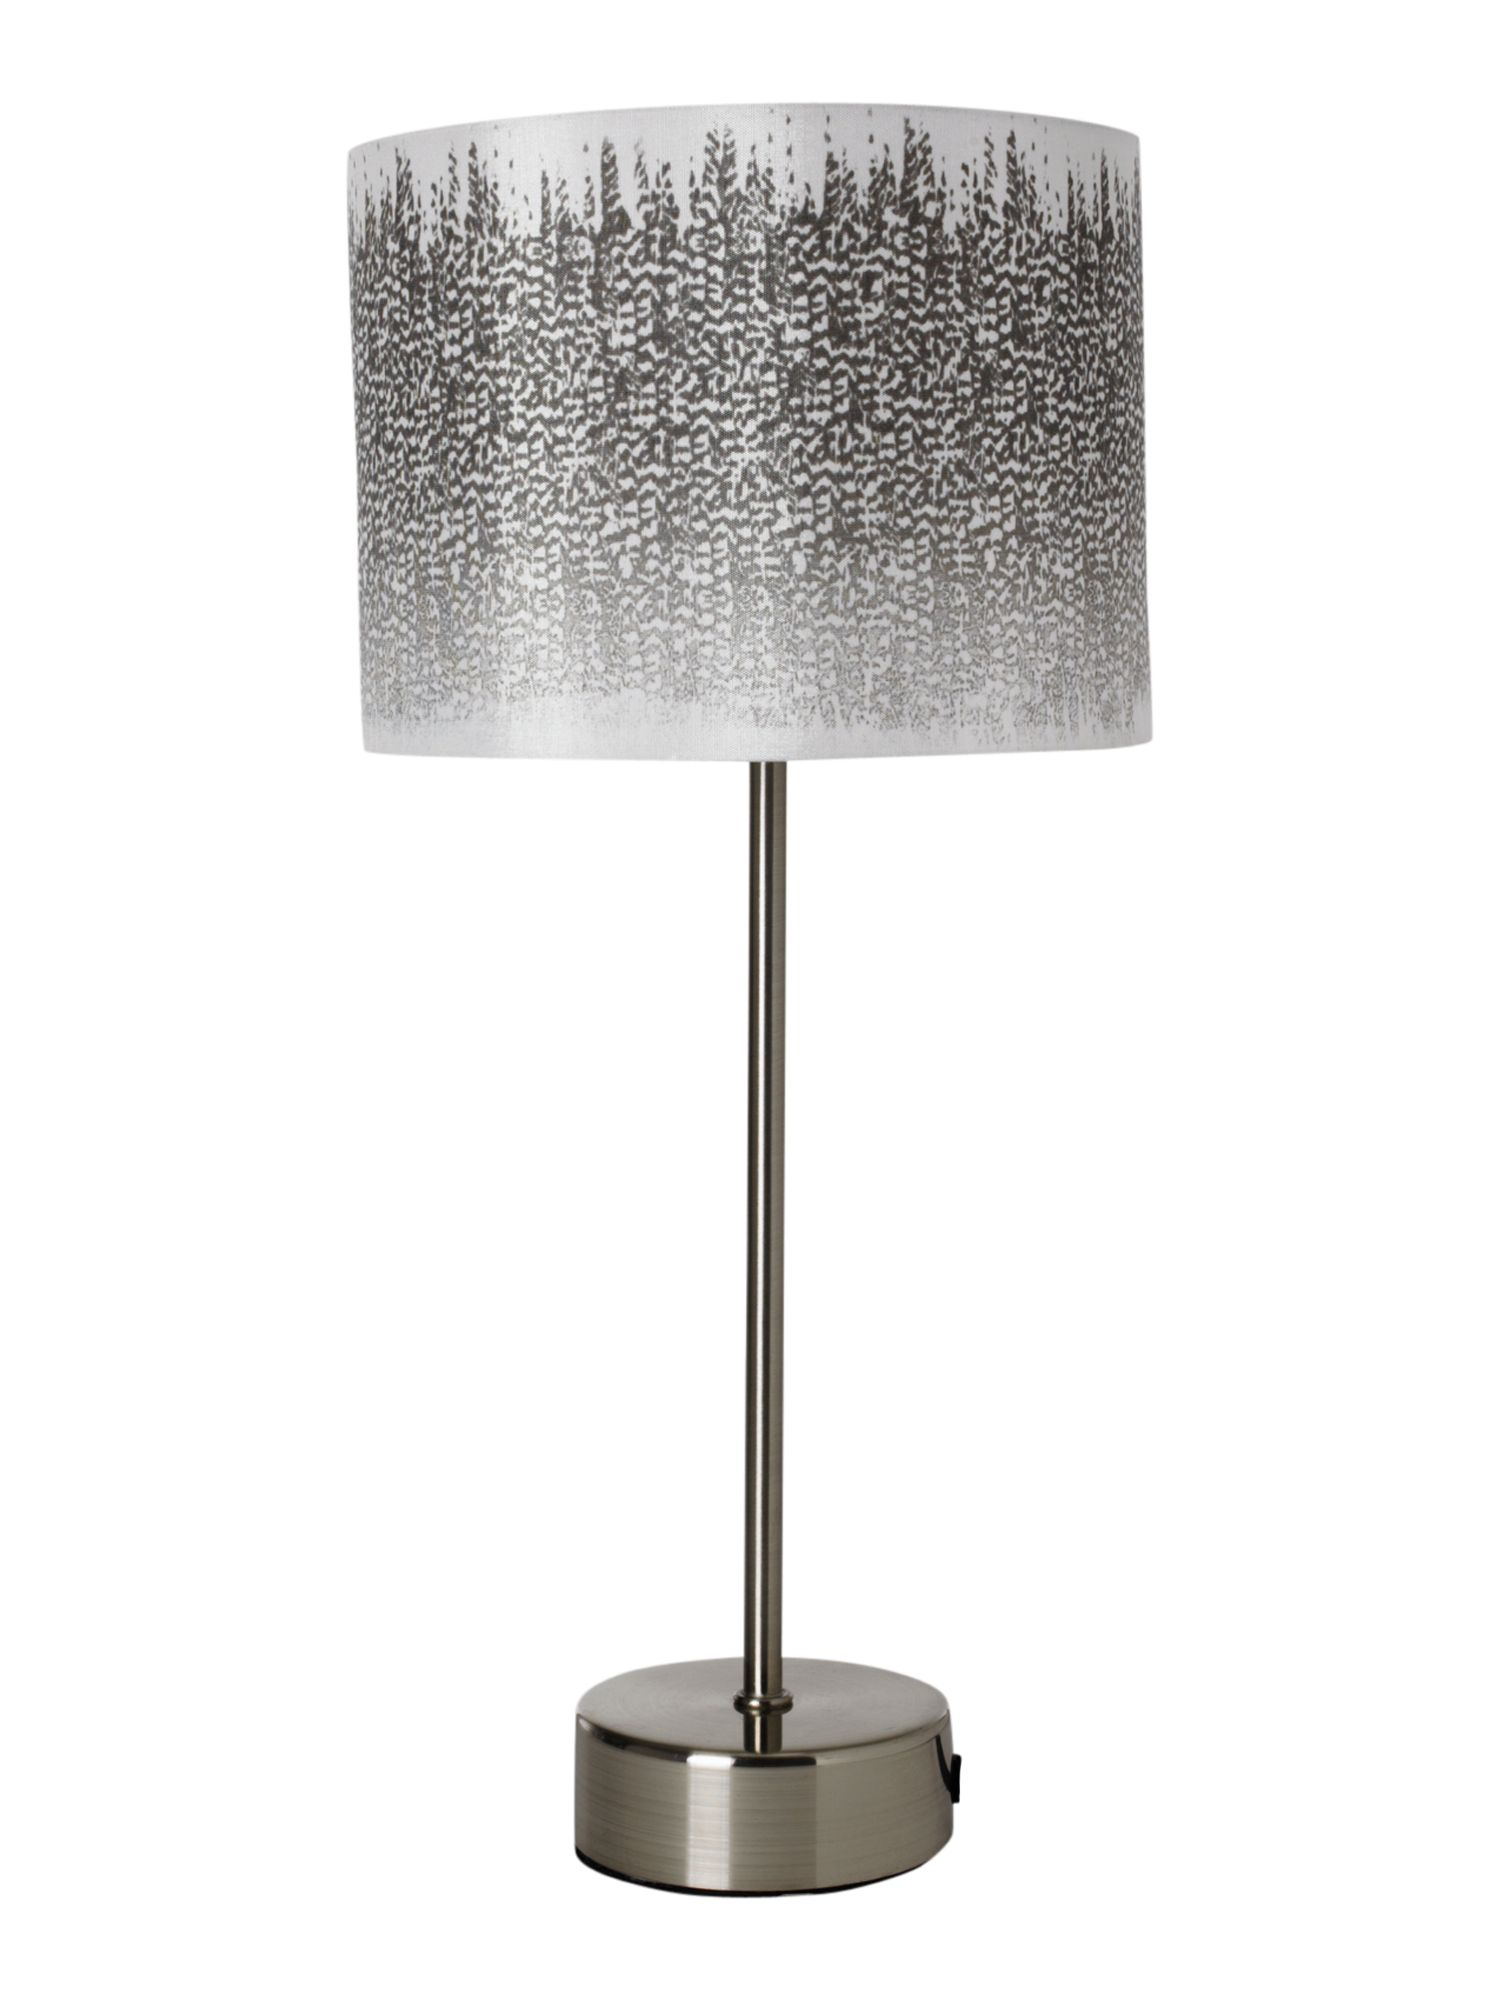 Ellis touch table lamp 147452540